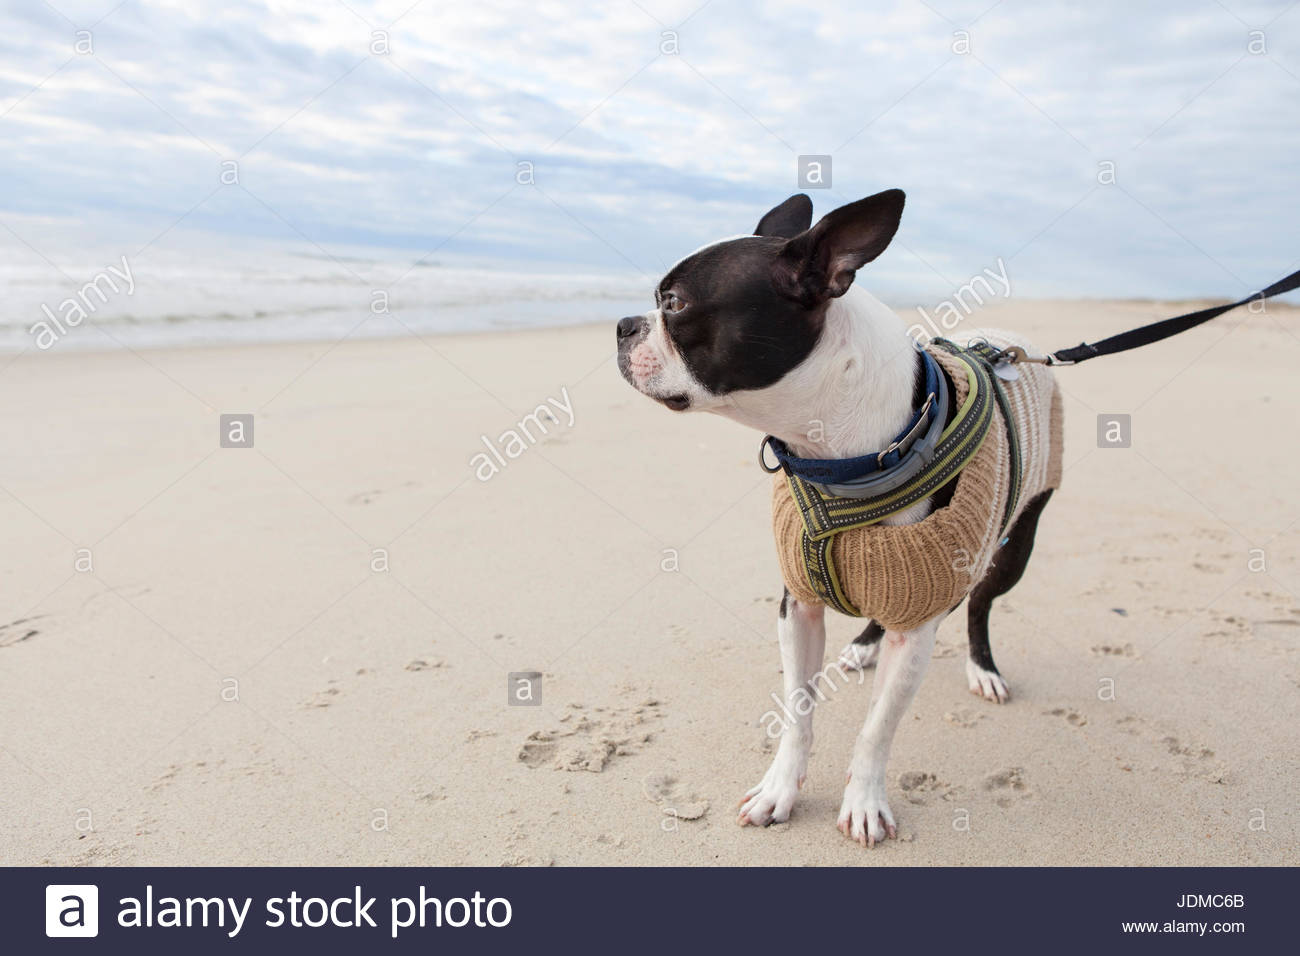 A young Boston terrier wearing a sweater explores the beach. - Stock Image